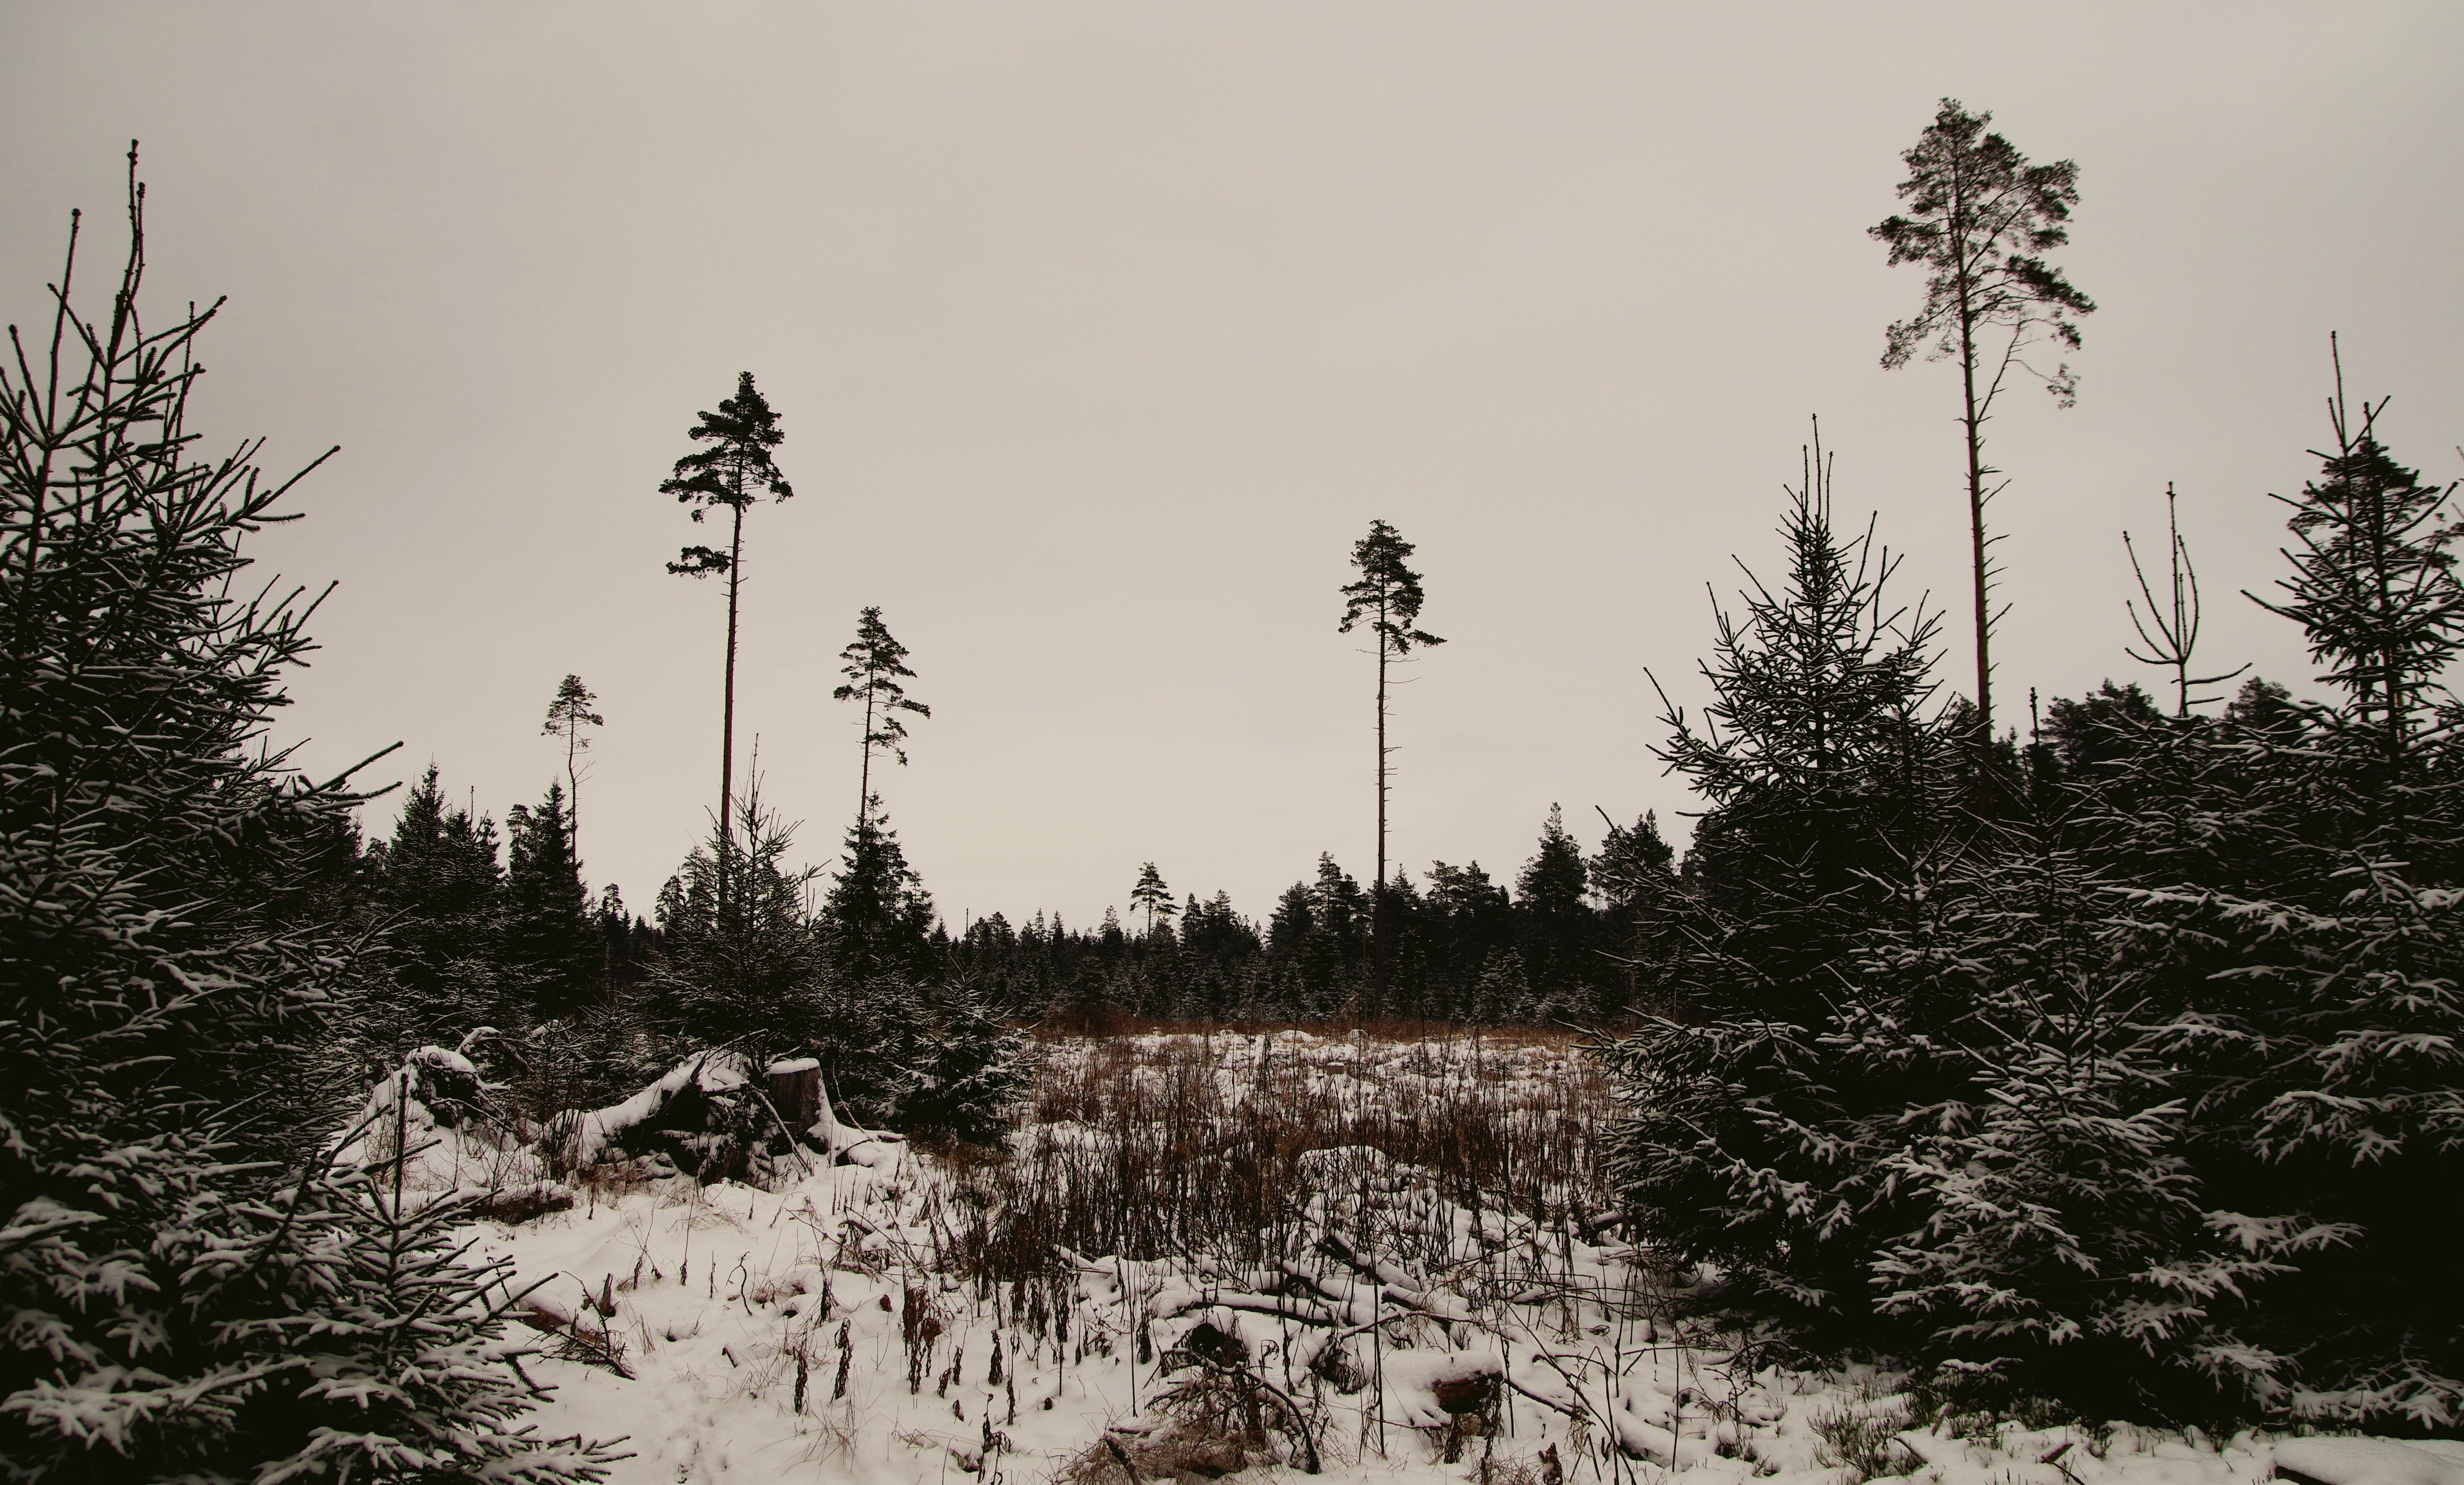 Snow-covered Trees and Land